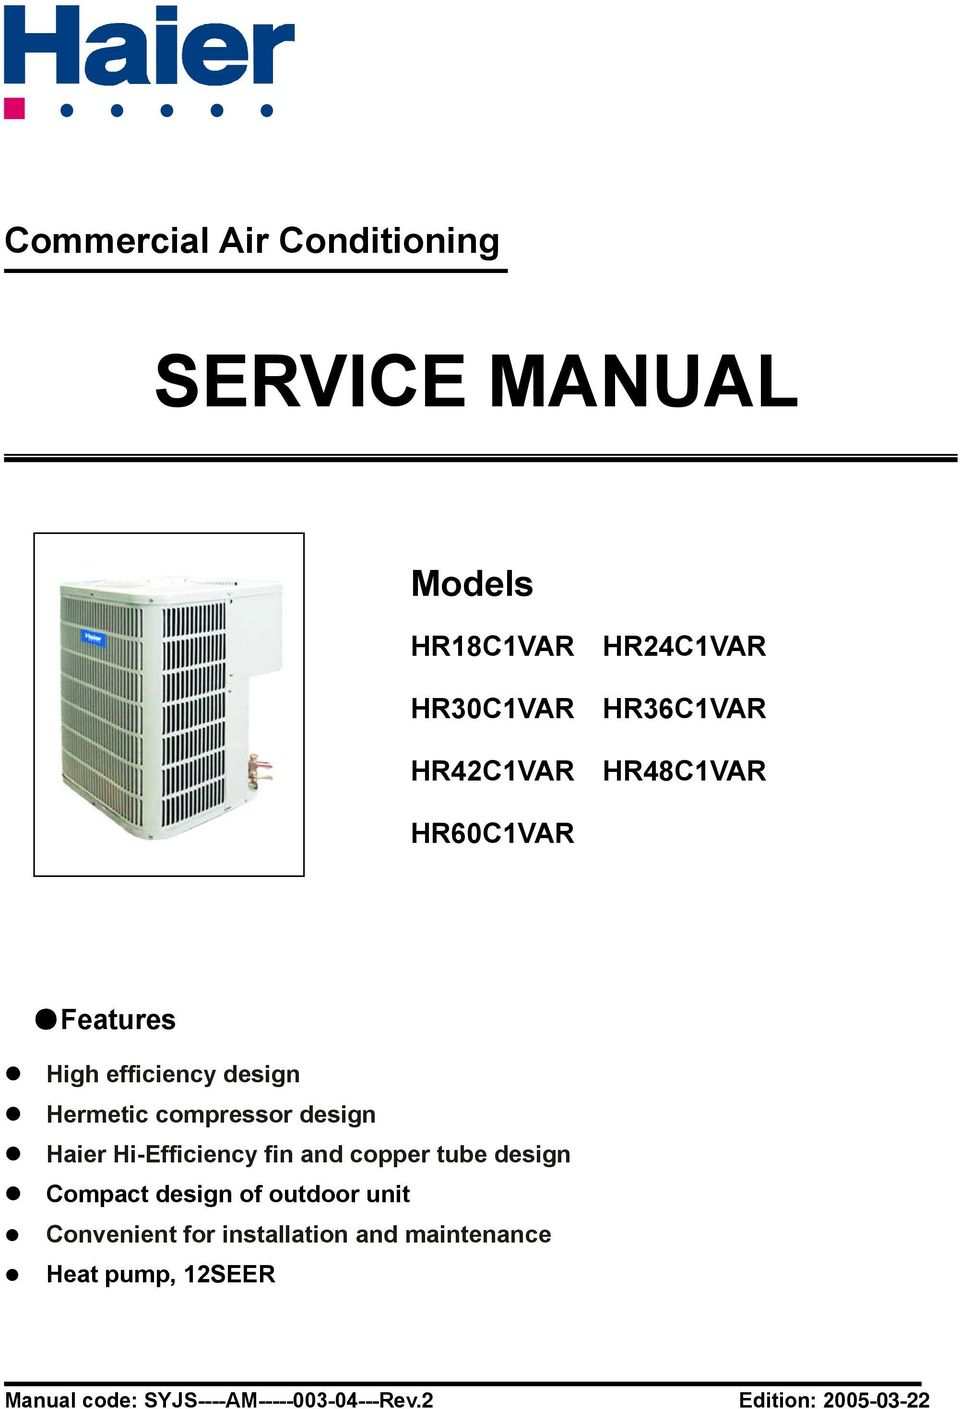 Haier Commercial Air Conditioner Service Manual Part Ac Handler Wiring Diagrams Transcription